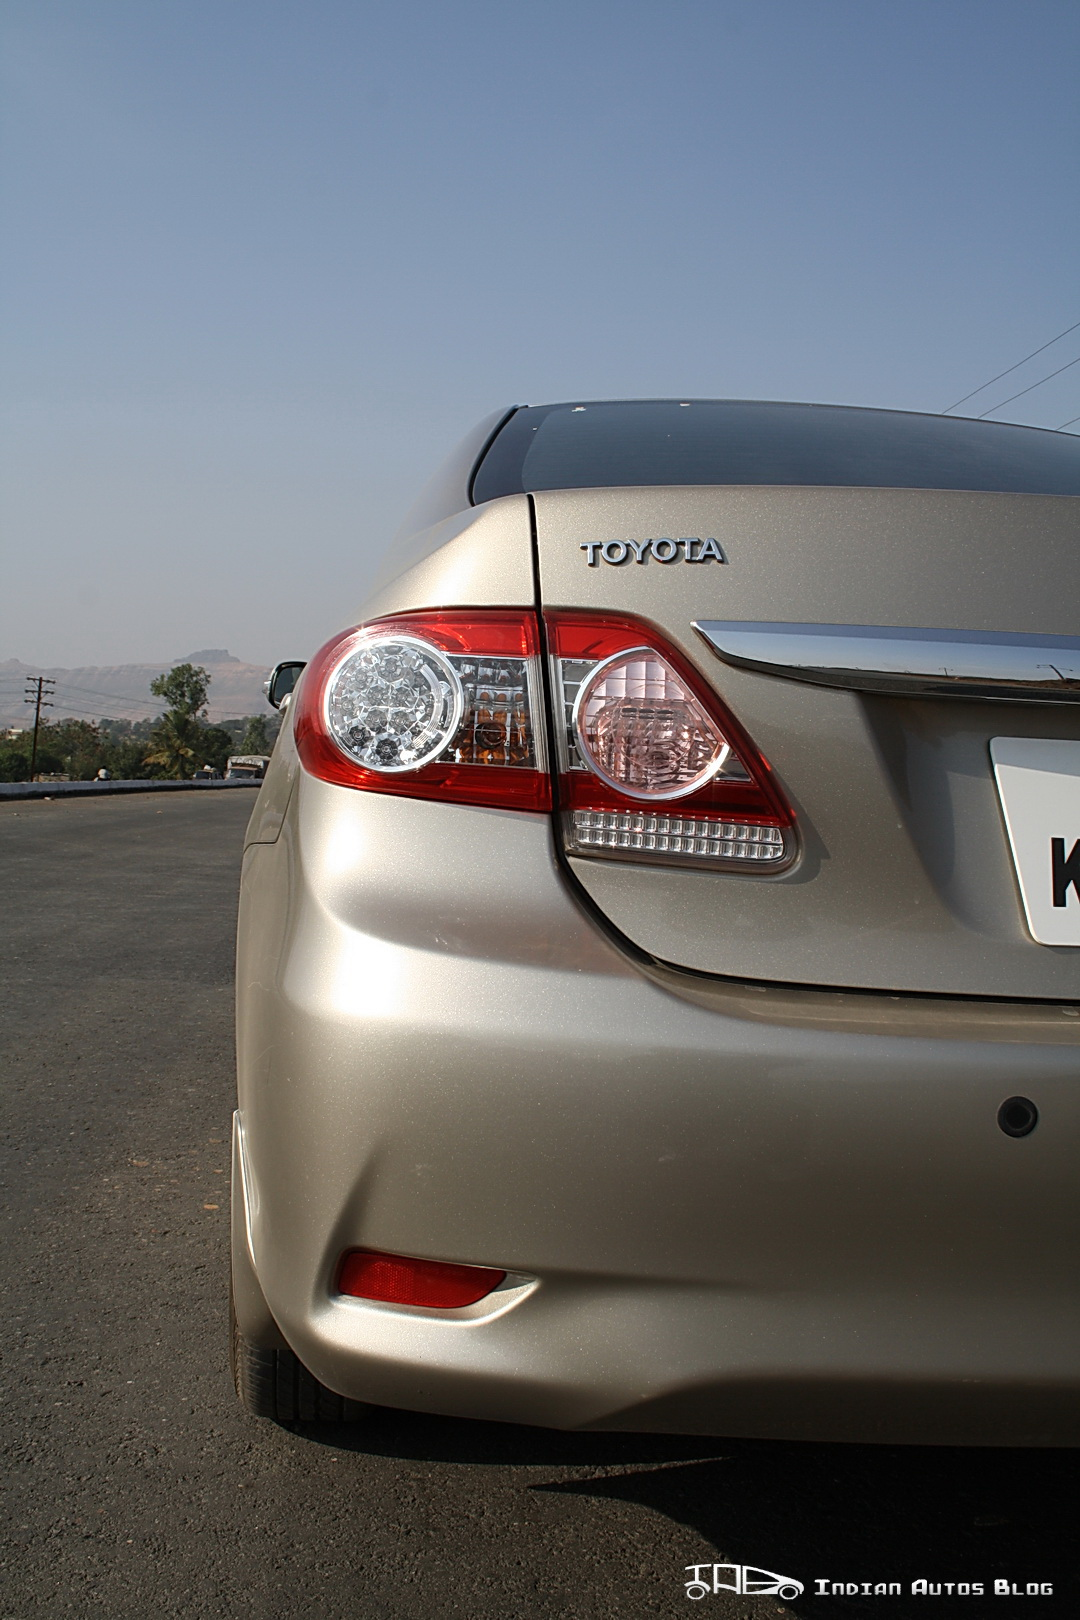 Facelifted Corolla Altis tail lamps